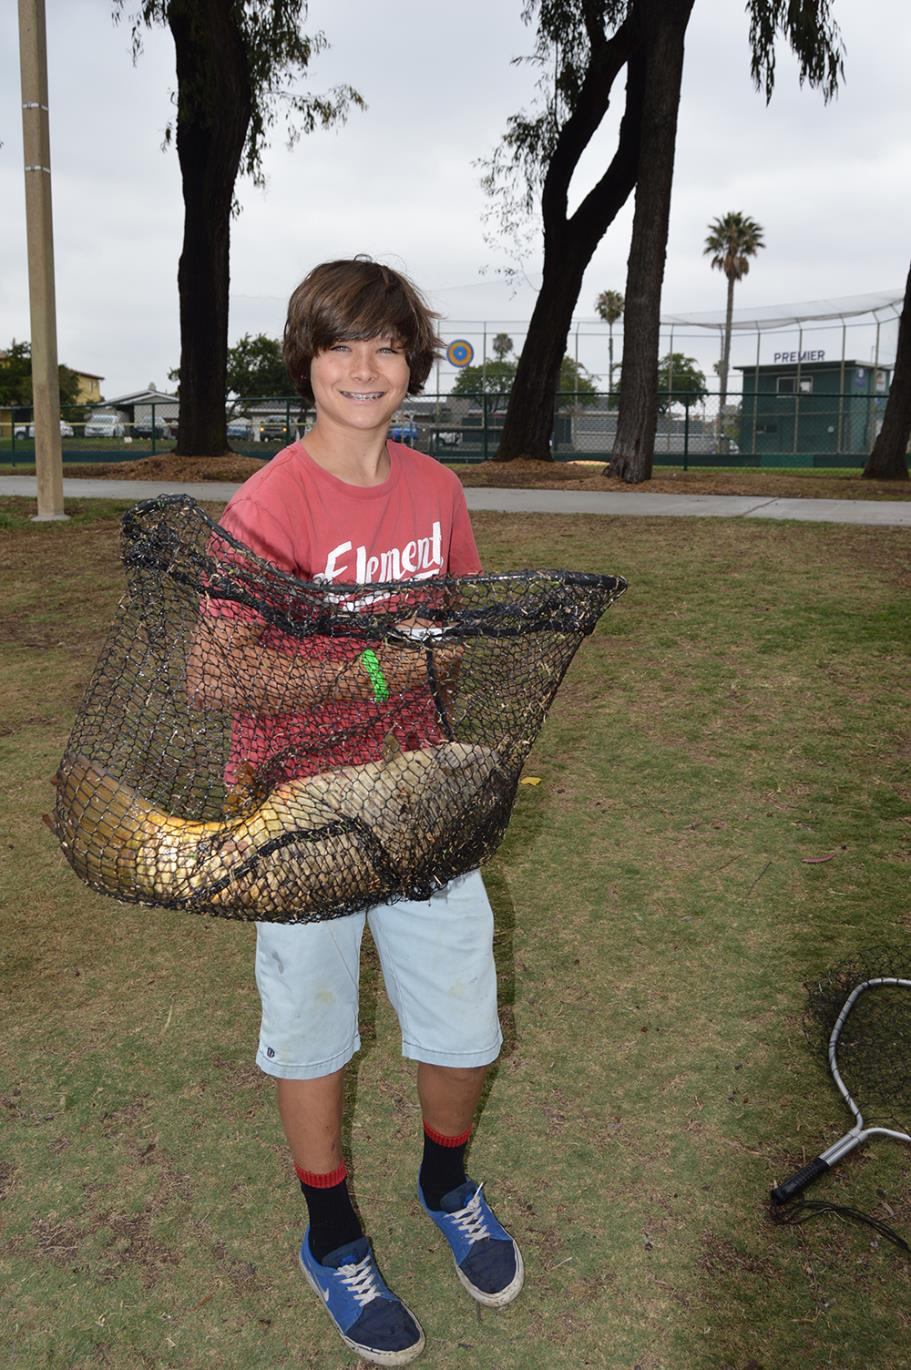 Boy holding a net that has an extremely large carp he caught